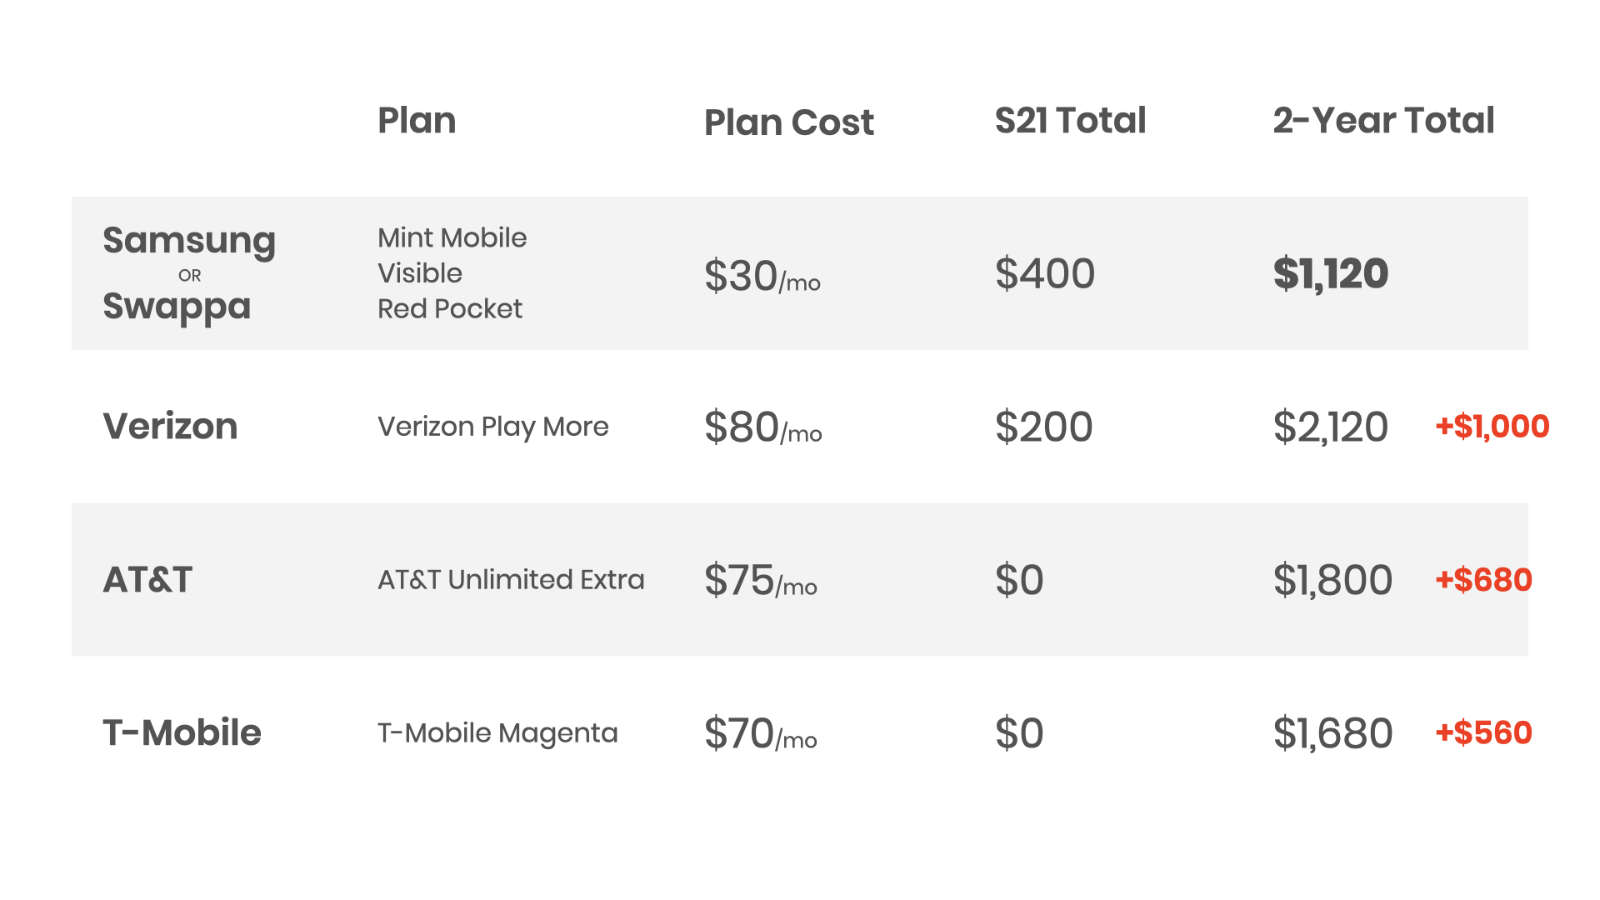 Getting an unlocked Galaxy S21 and an affordable cell phone plan saves you between $560 to $1,000 over just two years